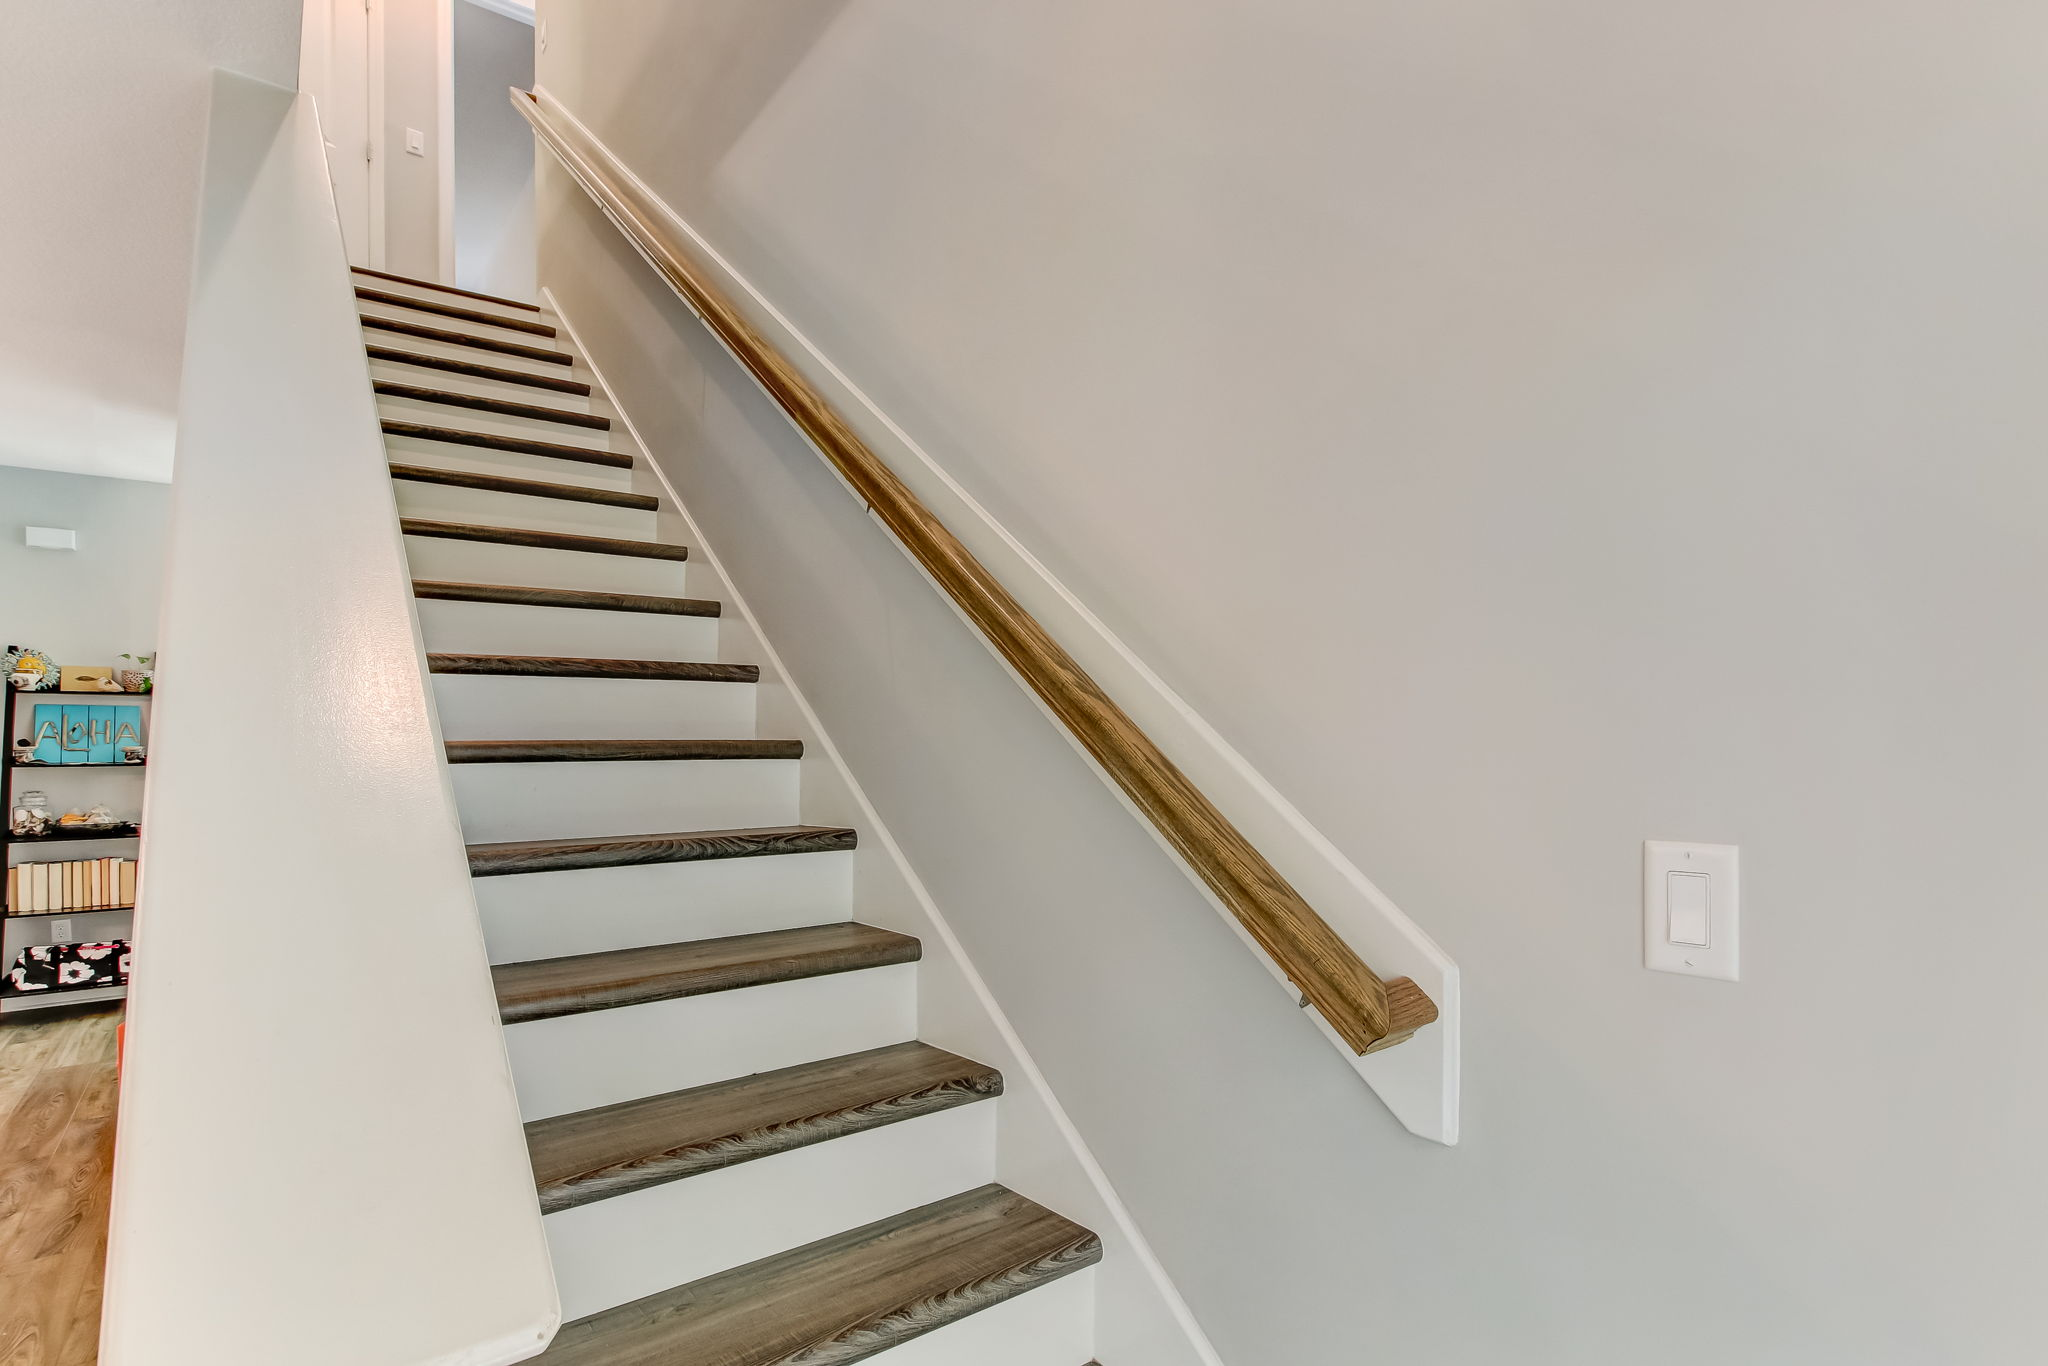 Let's Go Upstairs